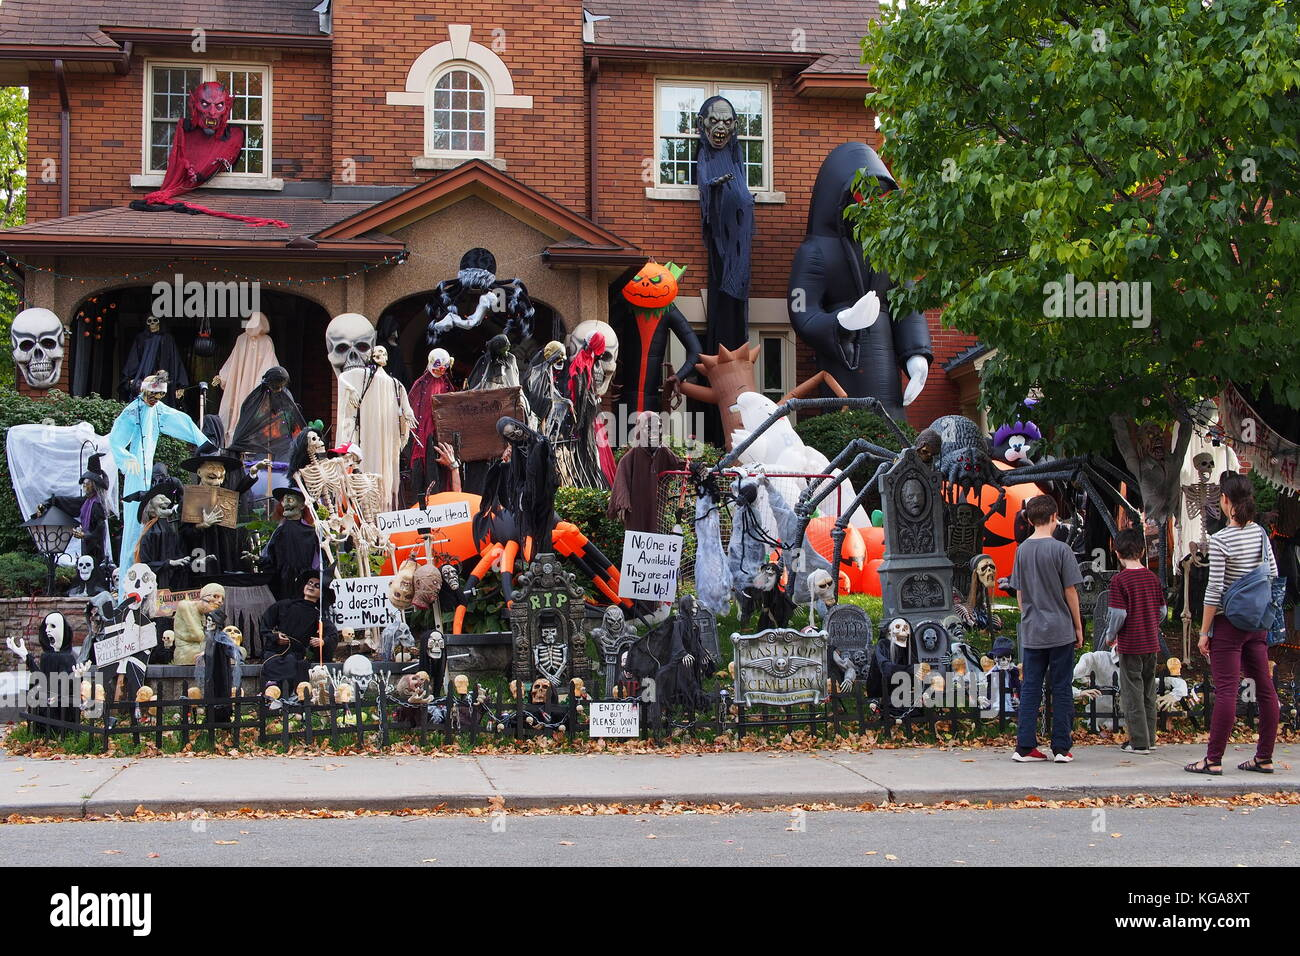 A family stops to view the elaborate Halloween garden decorations